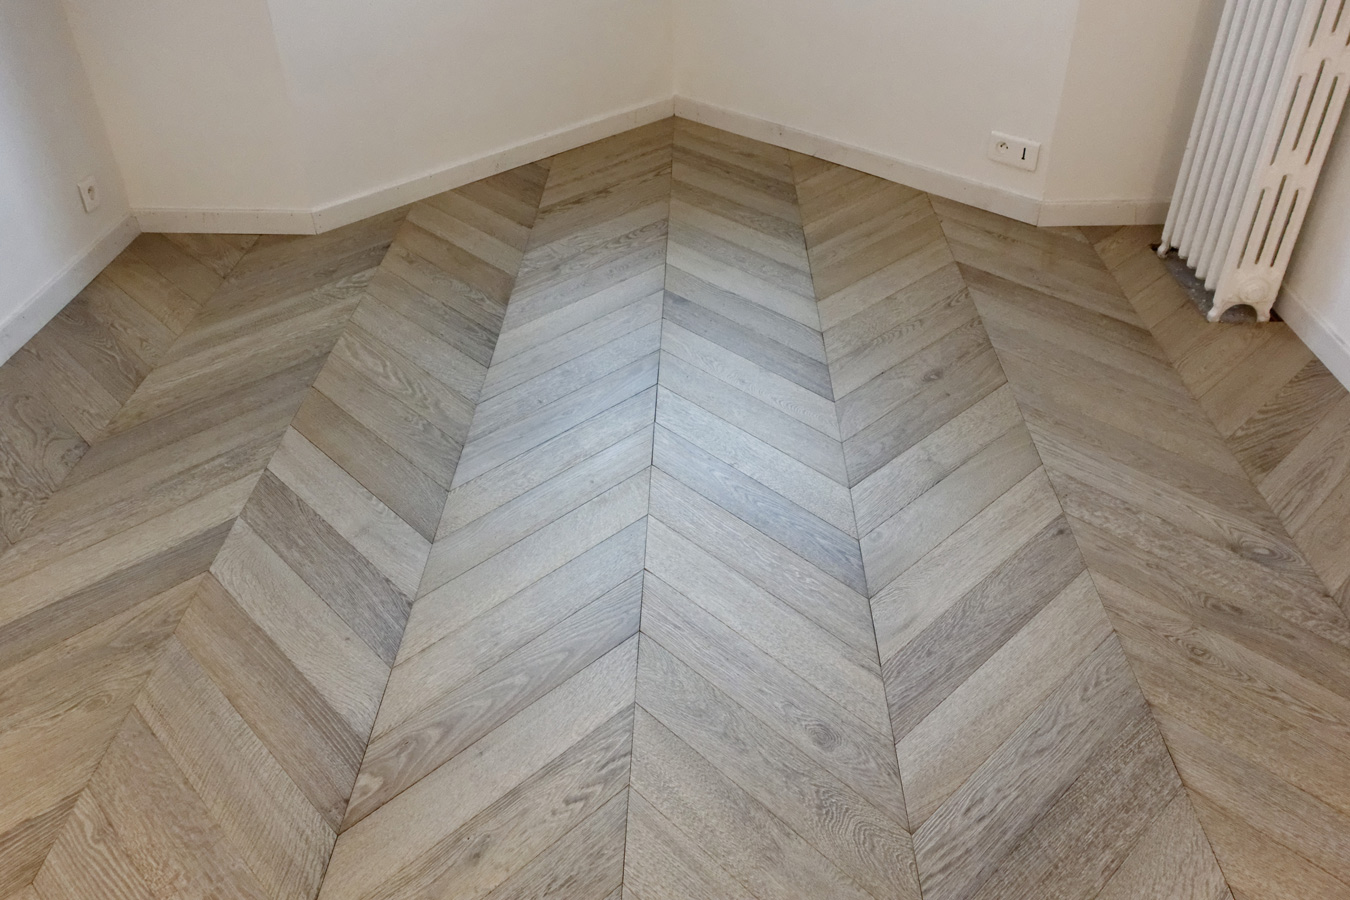 Atelier des granges french parquet general view of the floor laid 1001 - Parquet point de hongrie prix ...